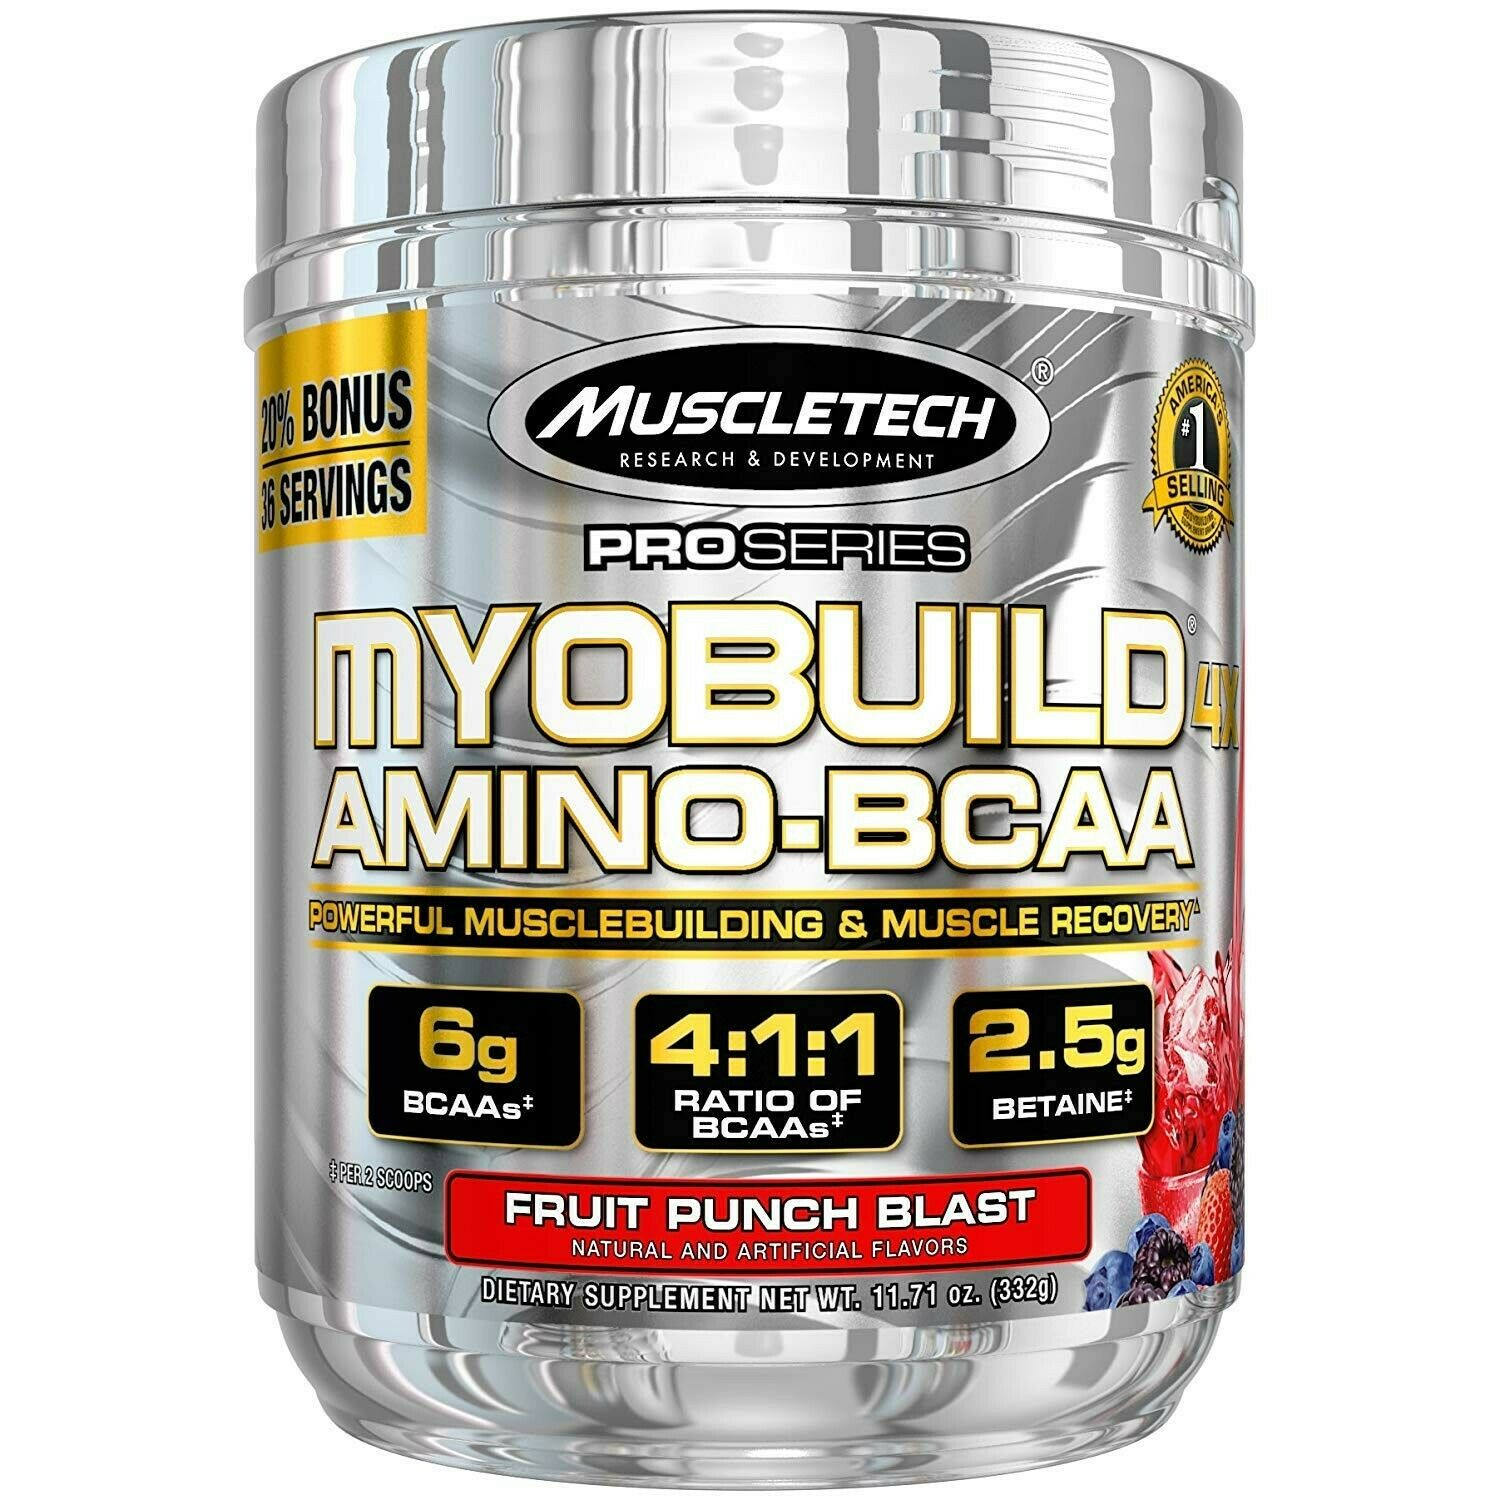 MuscleTech Myobuild BCAA Amino Acids Supplement, Muscle Building and Recovery…